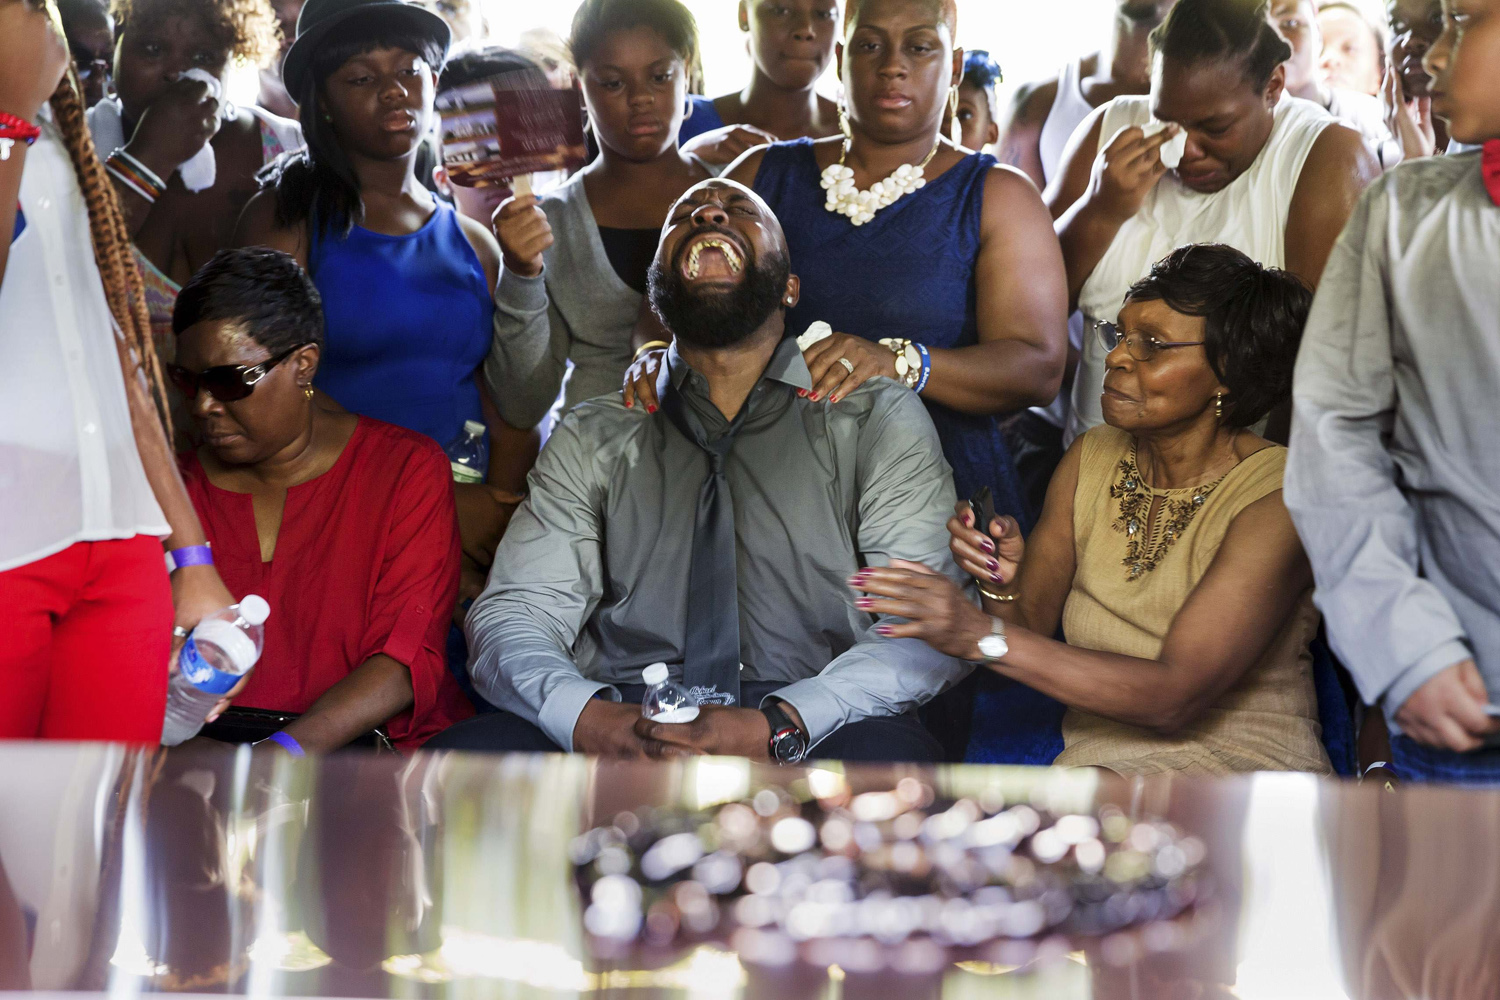 Aug. 25, 2014. Michael Brown Sr. yells out as his son's casket is lowered into the ground at St. Peter's Cemetery in St. Louis, Missouri.